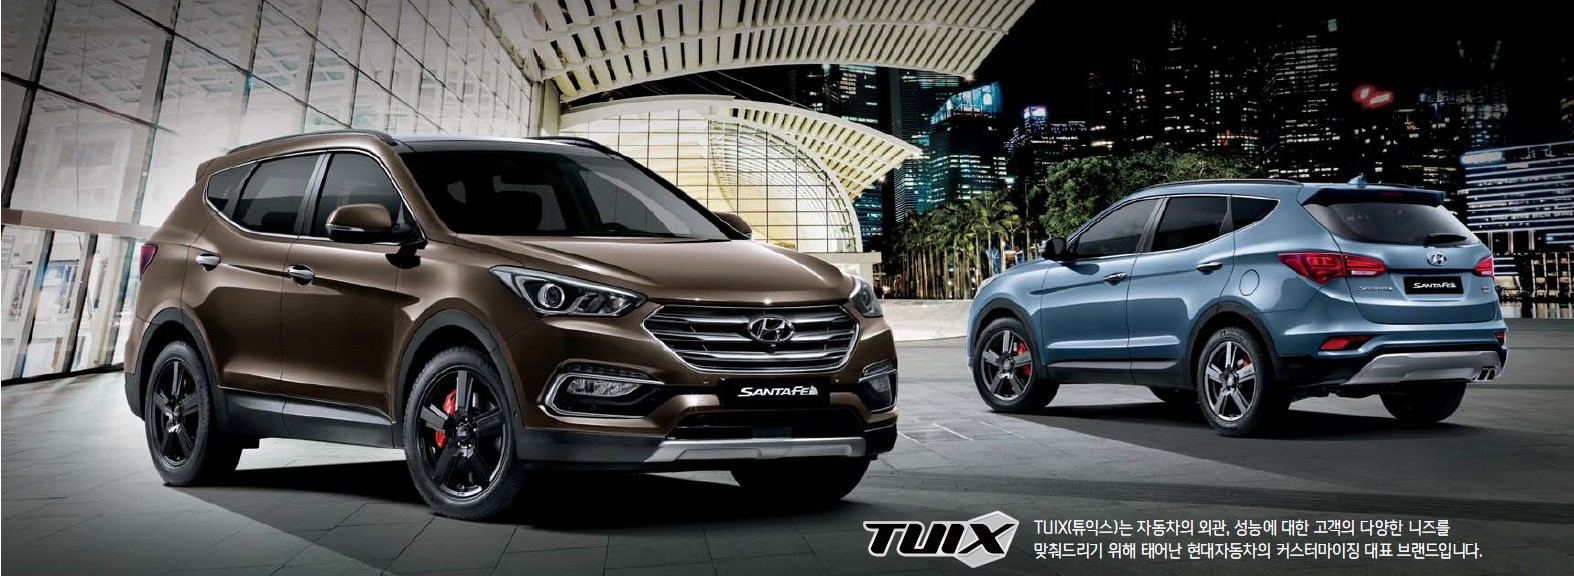 2016 hyundai santa fe facelift revealed in south korea. Black Bedroom Furniture Sets. Home Design Ideas